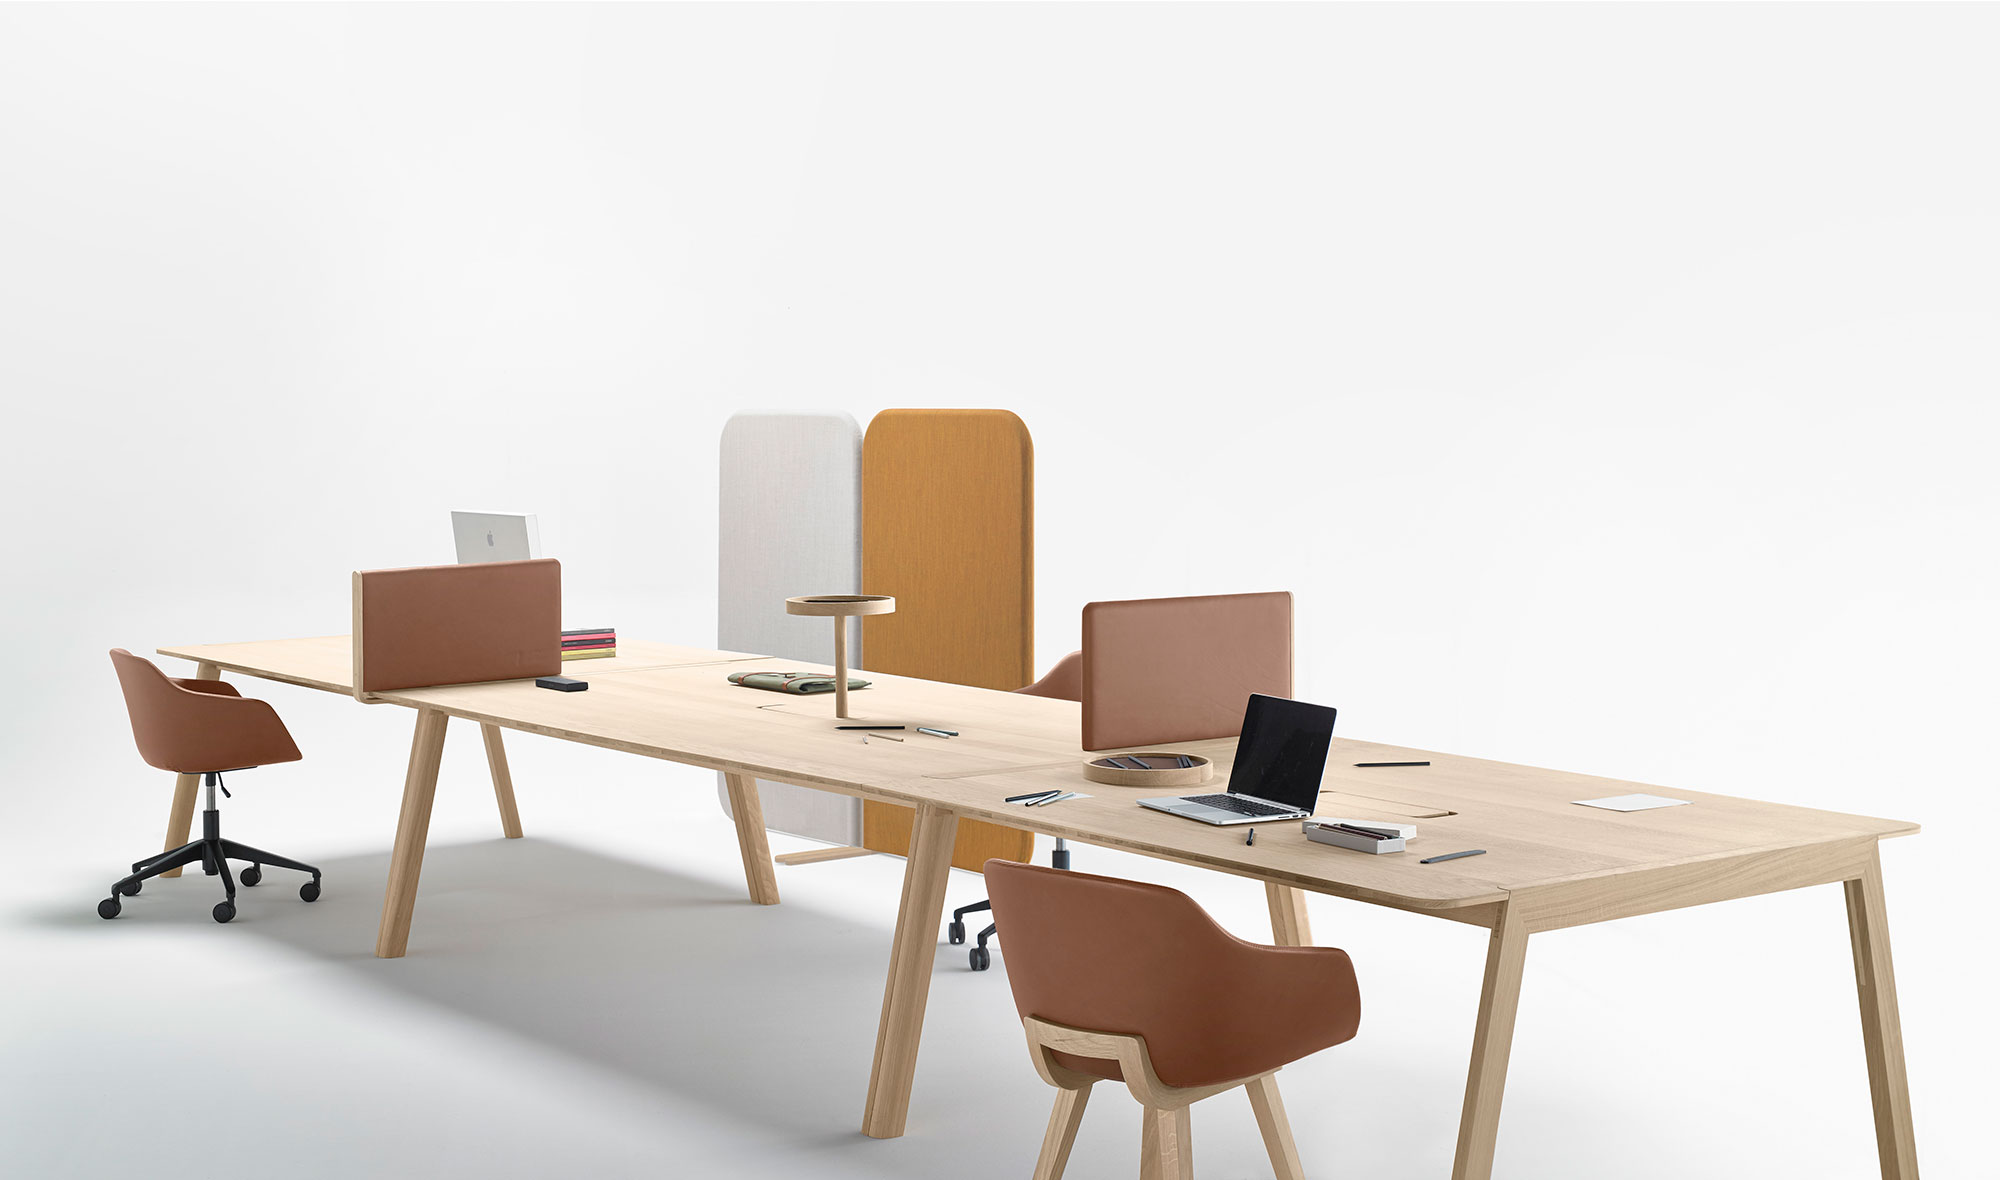 Desk-System-Office-Design-Iratzoki-Lizaso